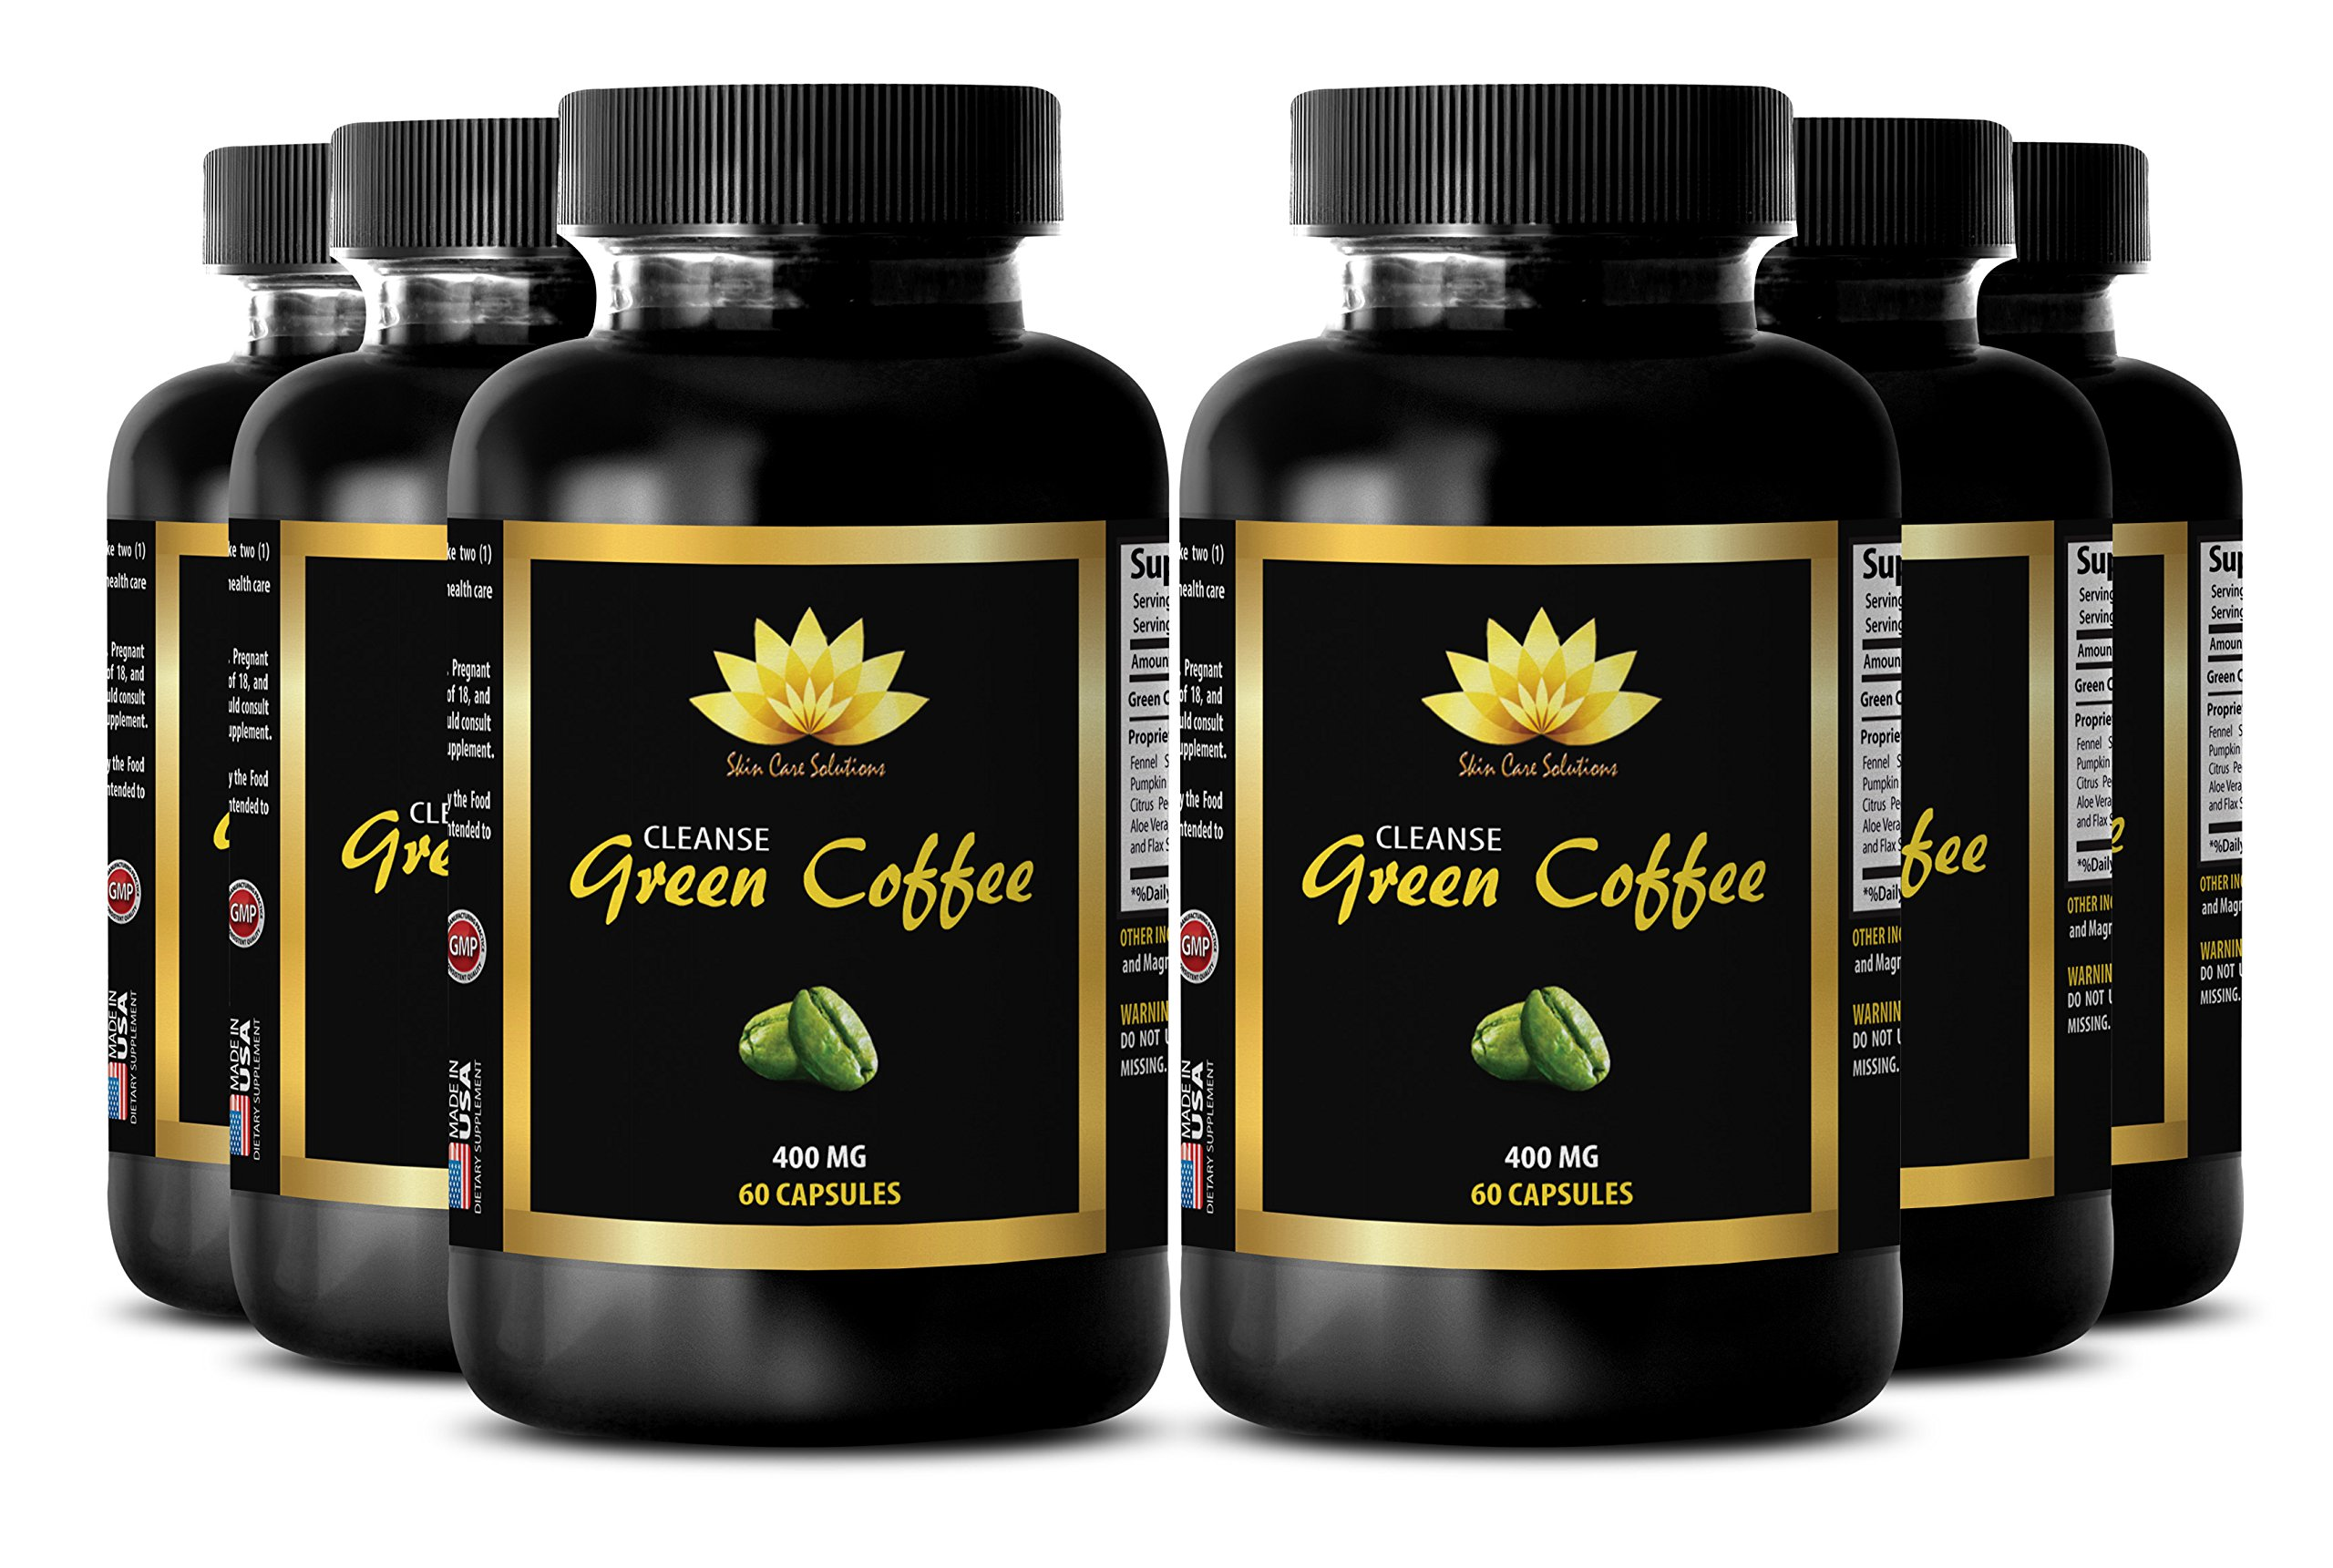 Fat burner for women - NATURAL GREEN COFFEE BEAN EXTRACT CLEANSE 400 mg - Aloe vera capsules - 6 Bottle 360 Capsules